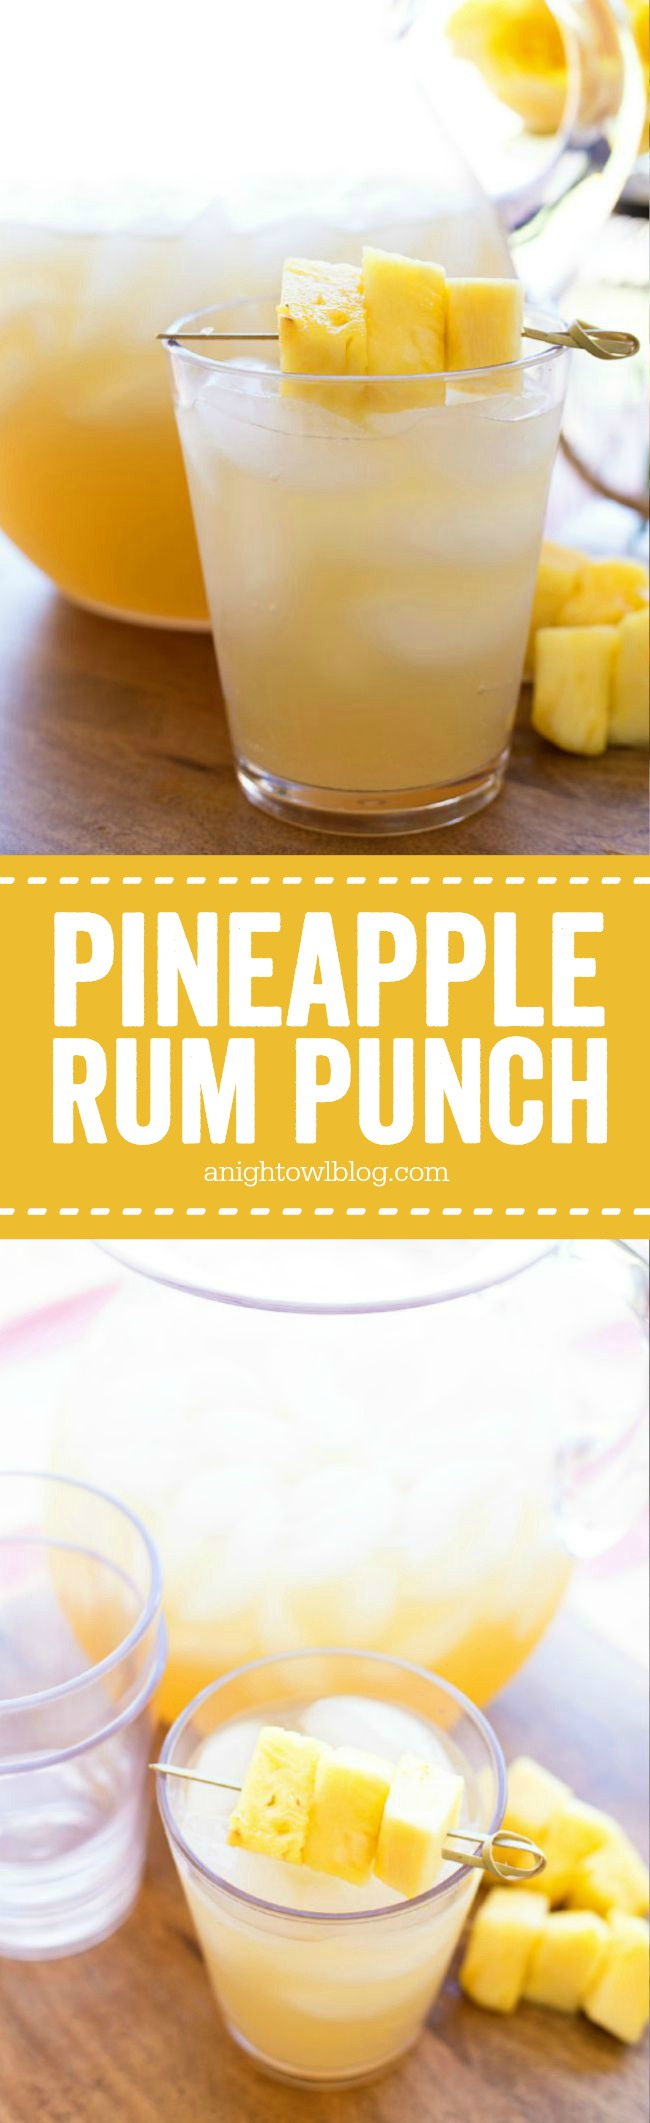 Pineapple Rum Punch - the perfect mix of tropical flavors in one ...